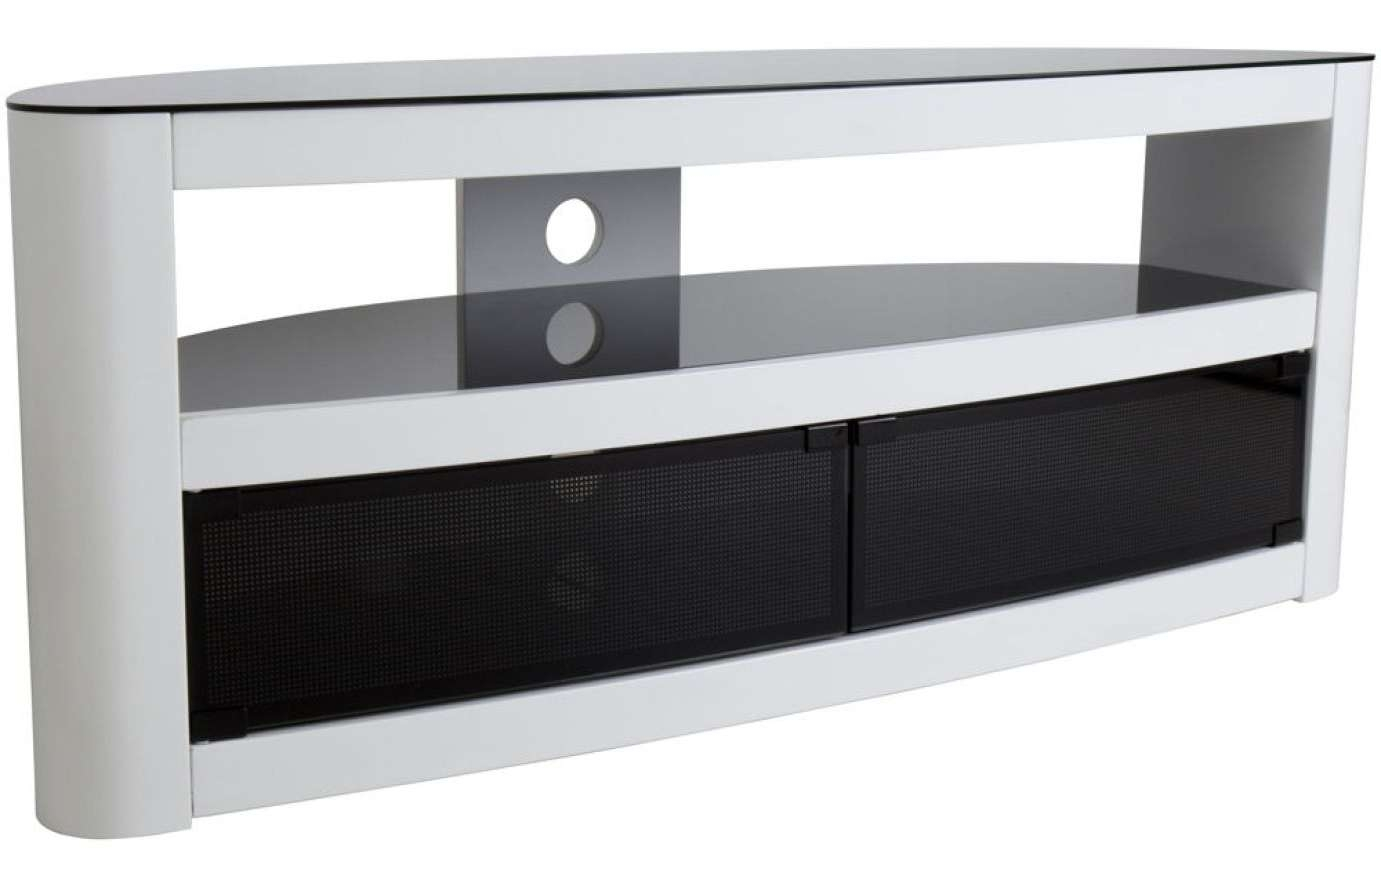 Tv : Tv Stand Images Amazing Stands And Deliver Tv Stands Buy Avf In Stand And Deliver Tv Stands (View 9 of 20)